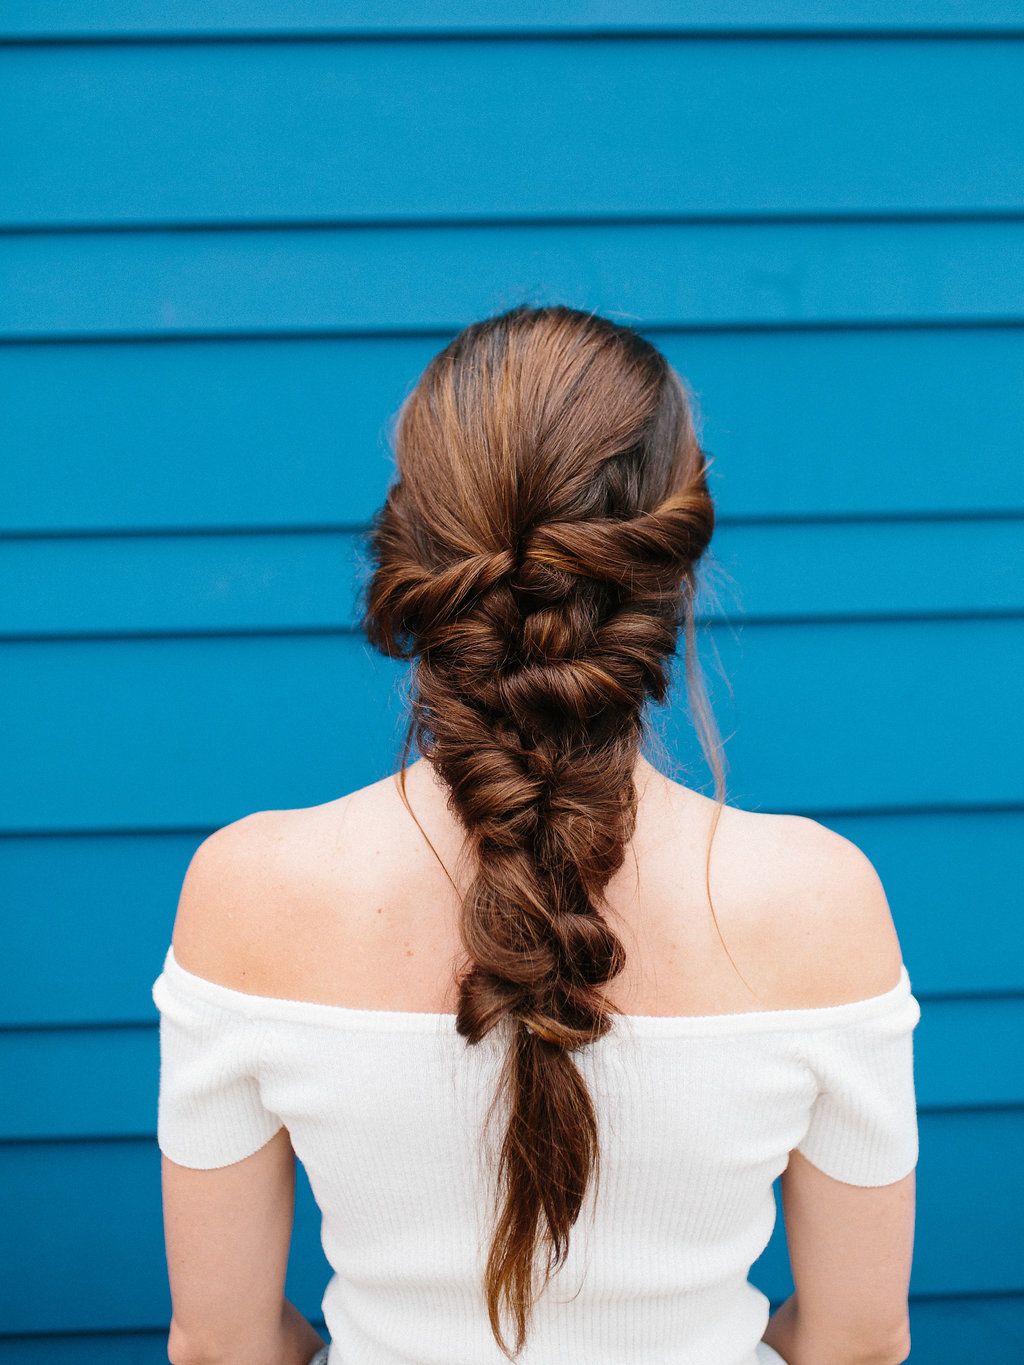 mermaid-braid-hair-tutorial